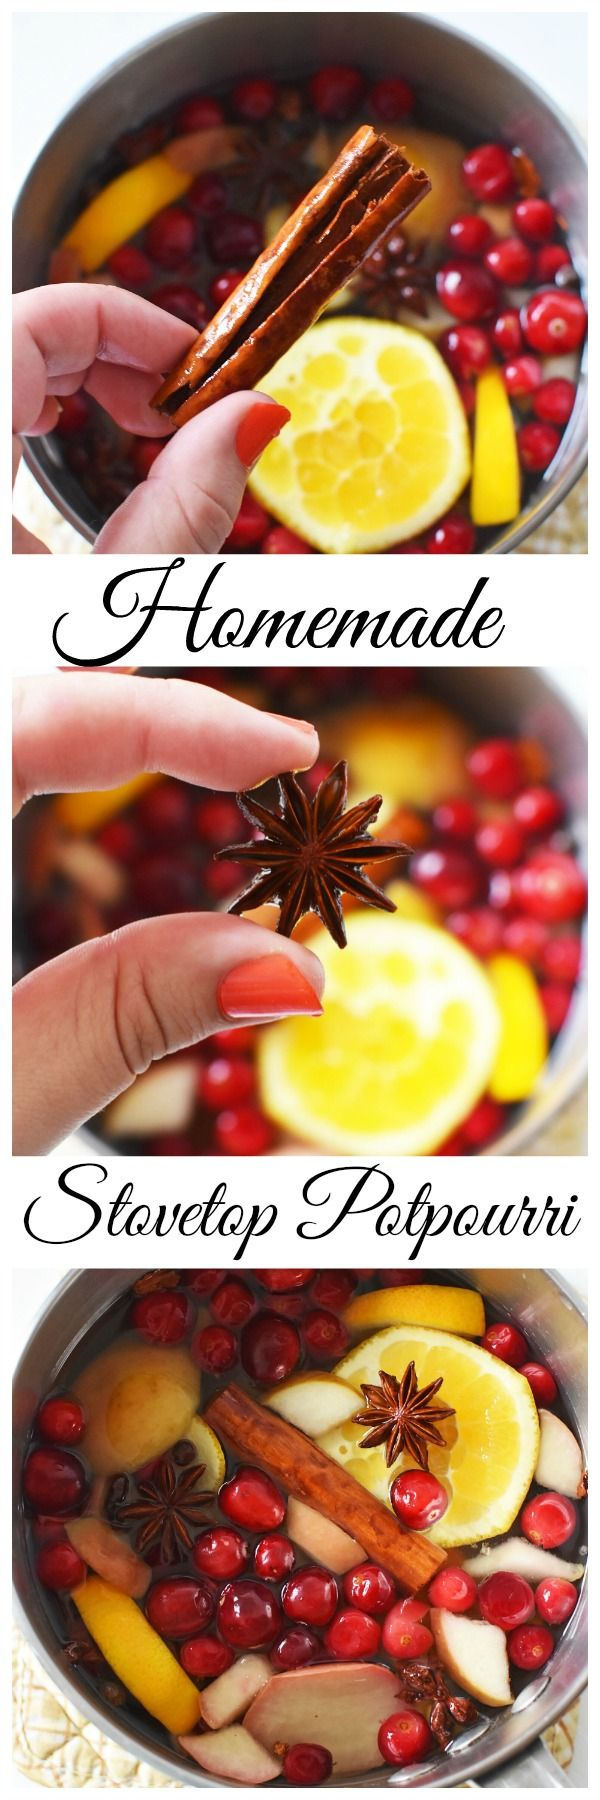 Homemade Stovetop Potpourri is the perfect way to get the scents of the season flowing throughout your home. Made with clove, anise star, and cinnamon to name a few- this mixture gives a great scent throw.